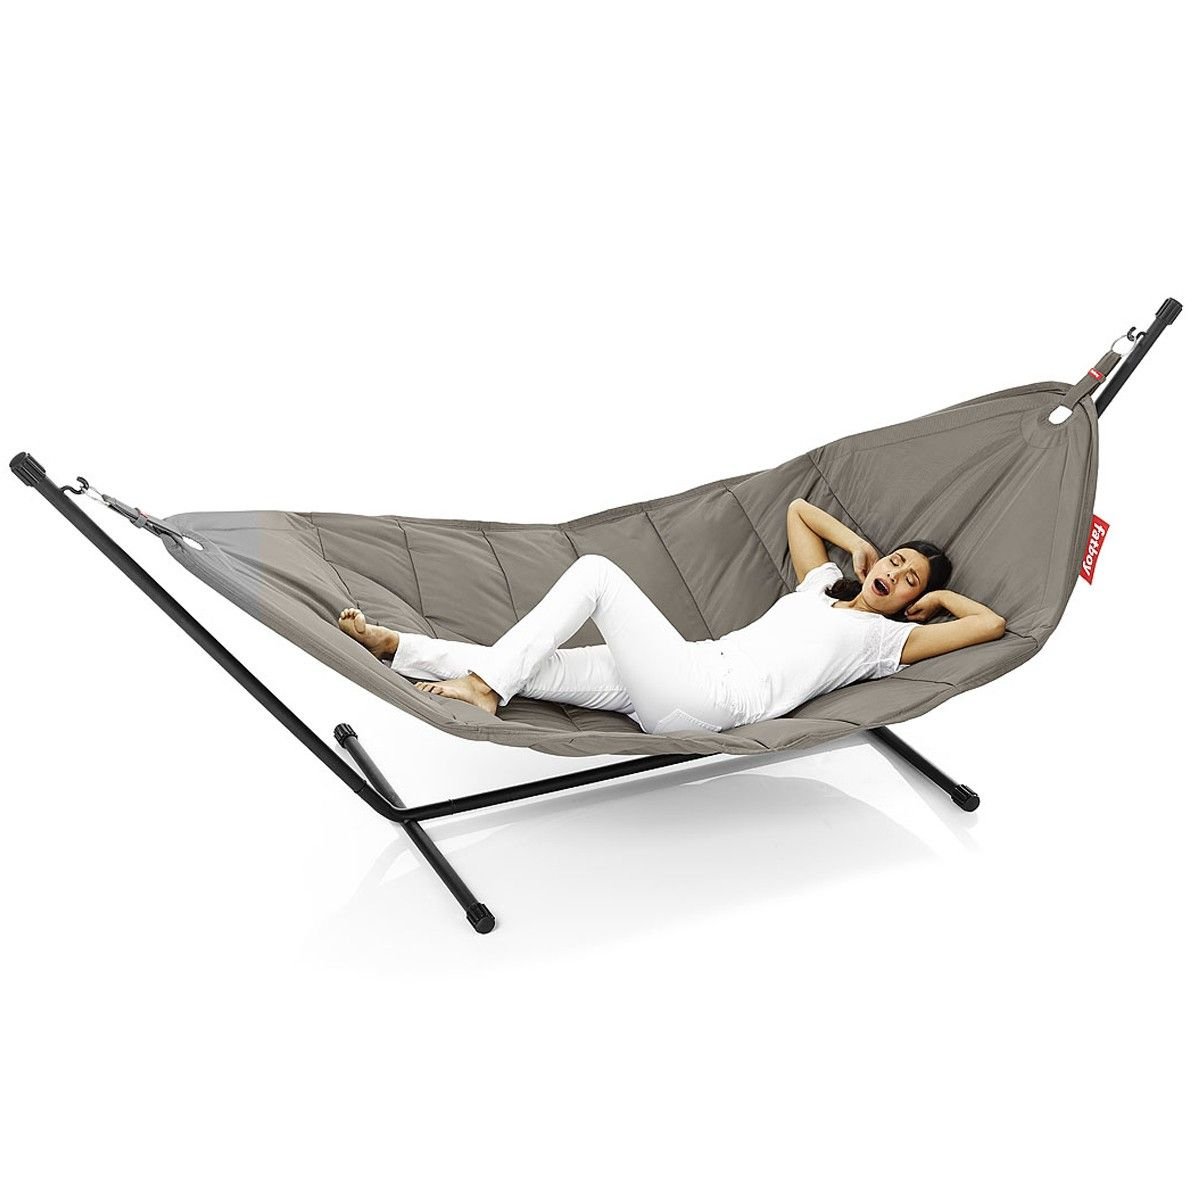 headdemock hammock taupe by fatboy   design furniture and decoration with made in design fat boy   headdemock  taupe    home ideas   pinterest   hammock      rh   pinterest